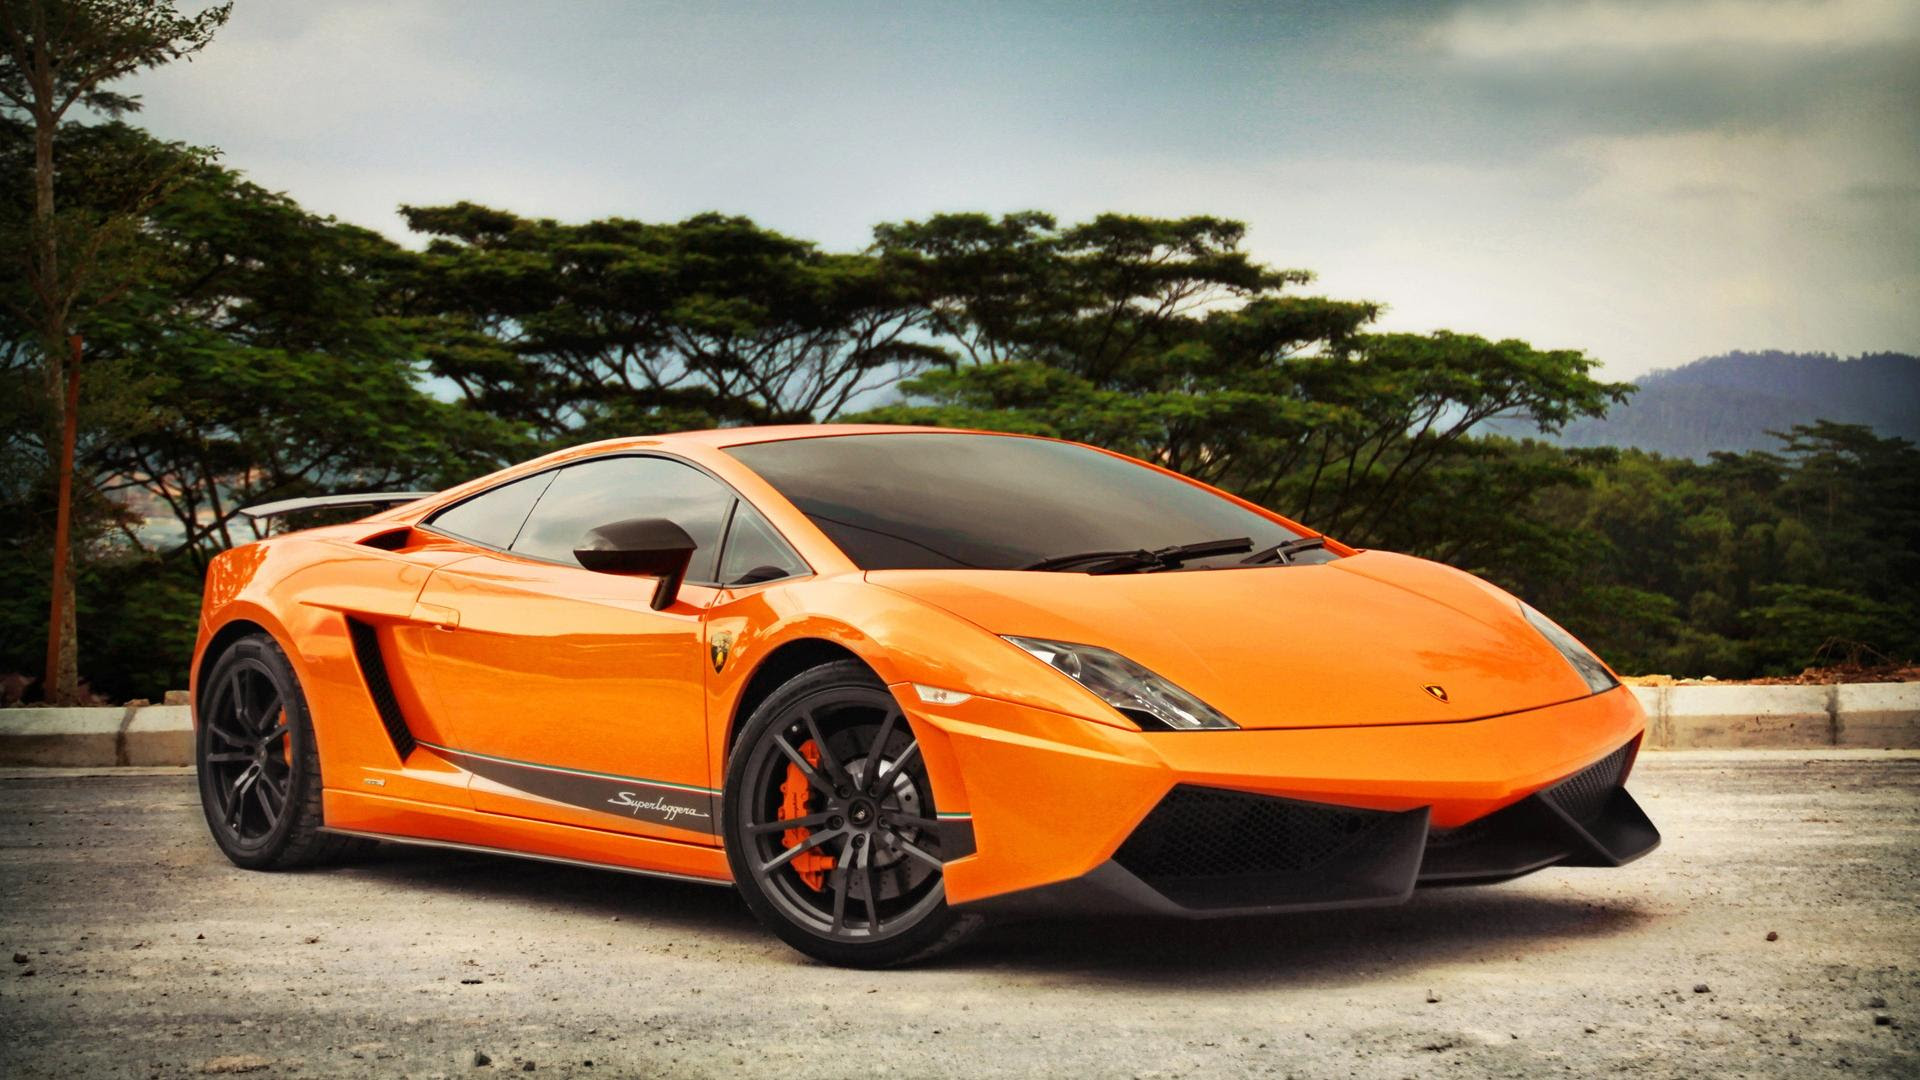 25 New Sports Cars Wallpapers Free Download